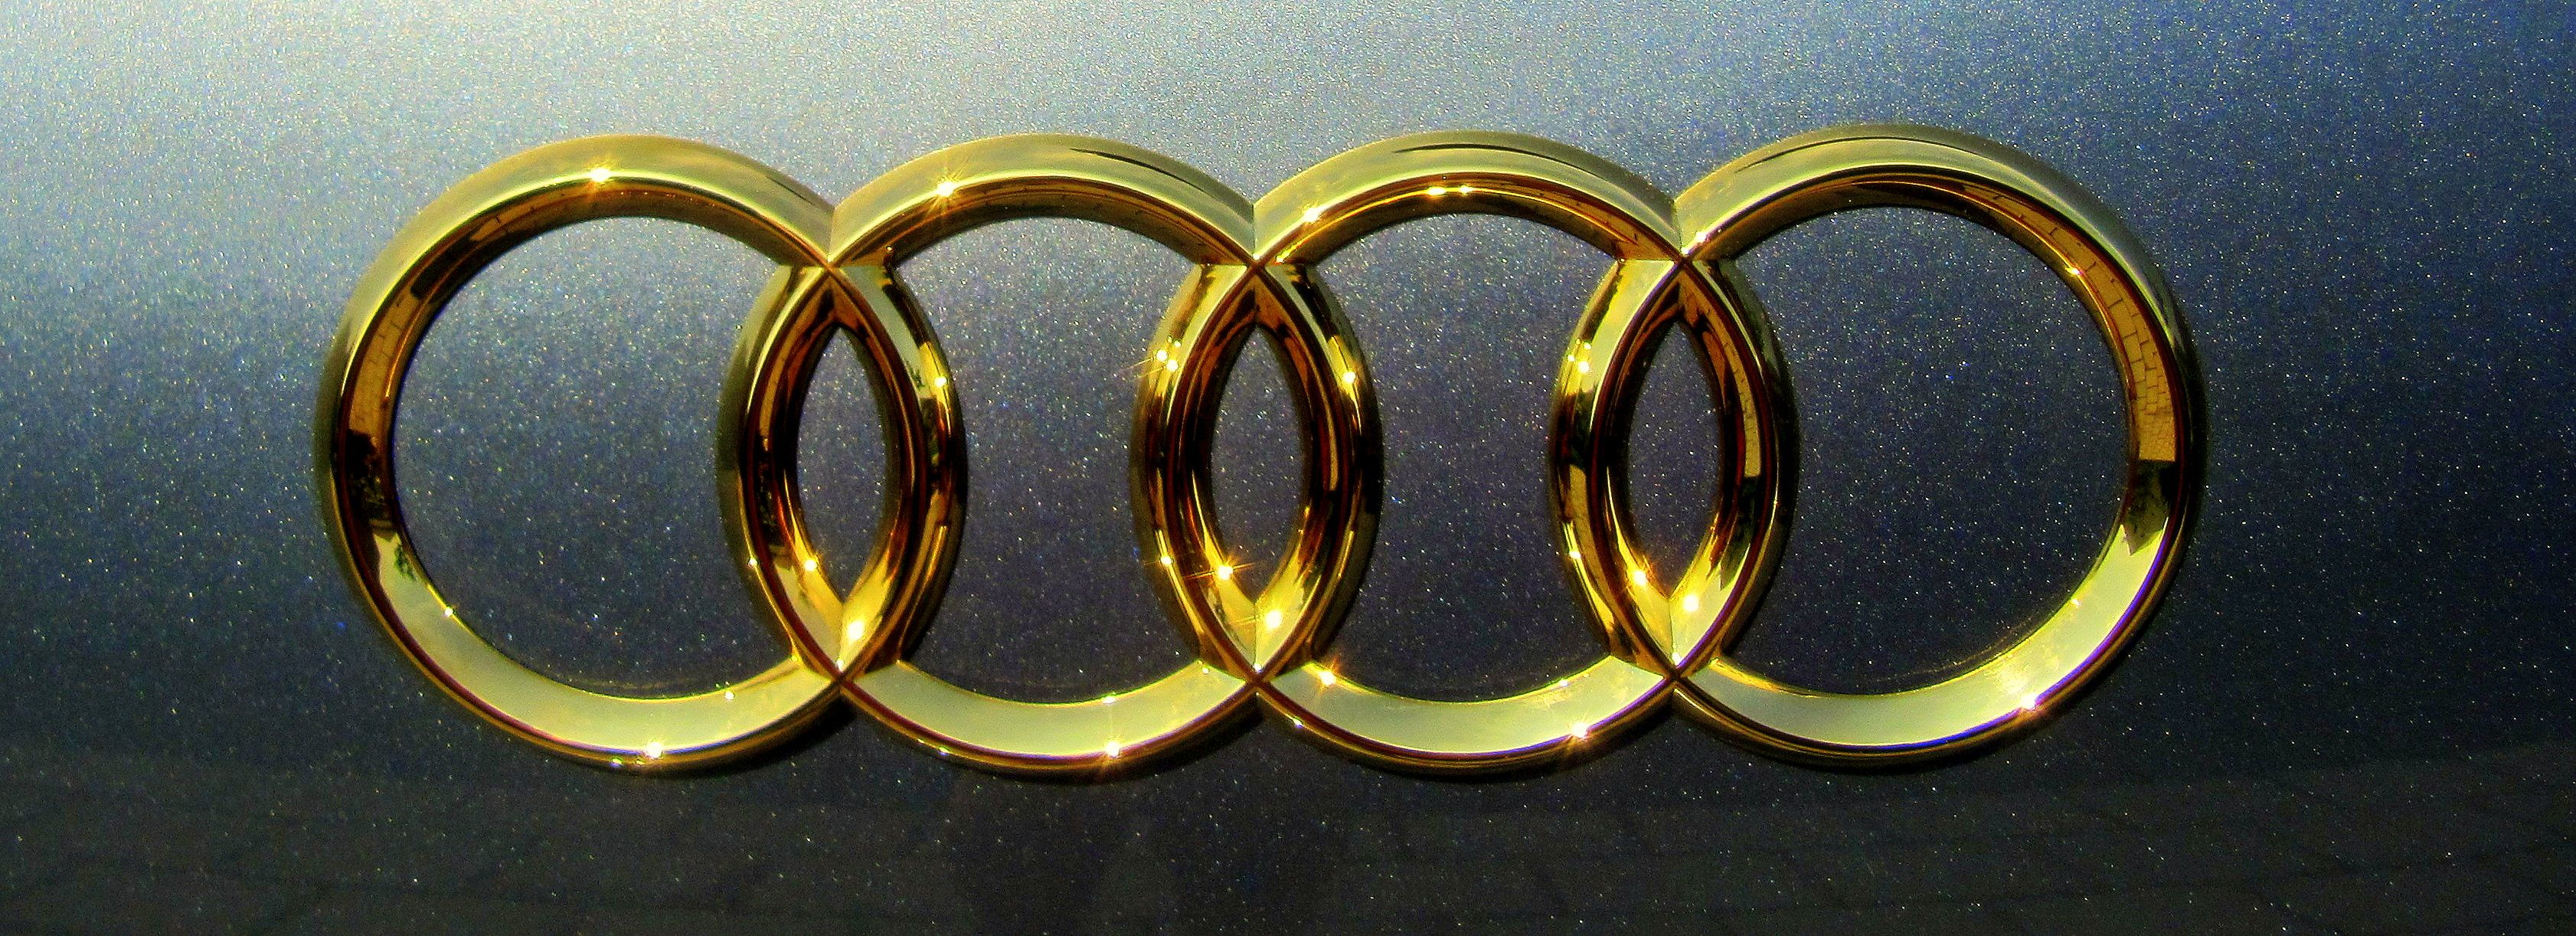 Logo Audi Upgrade To A6 Your Car May Also Get These Jewels Finish 24k Gold Treatment Cleaning Dechromized Gilding